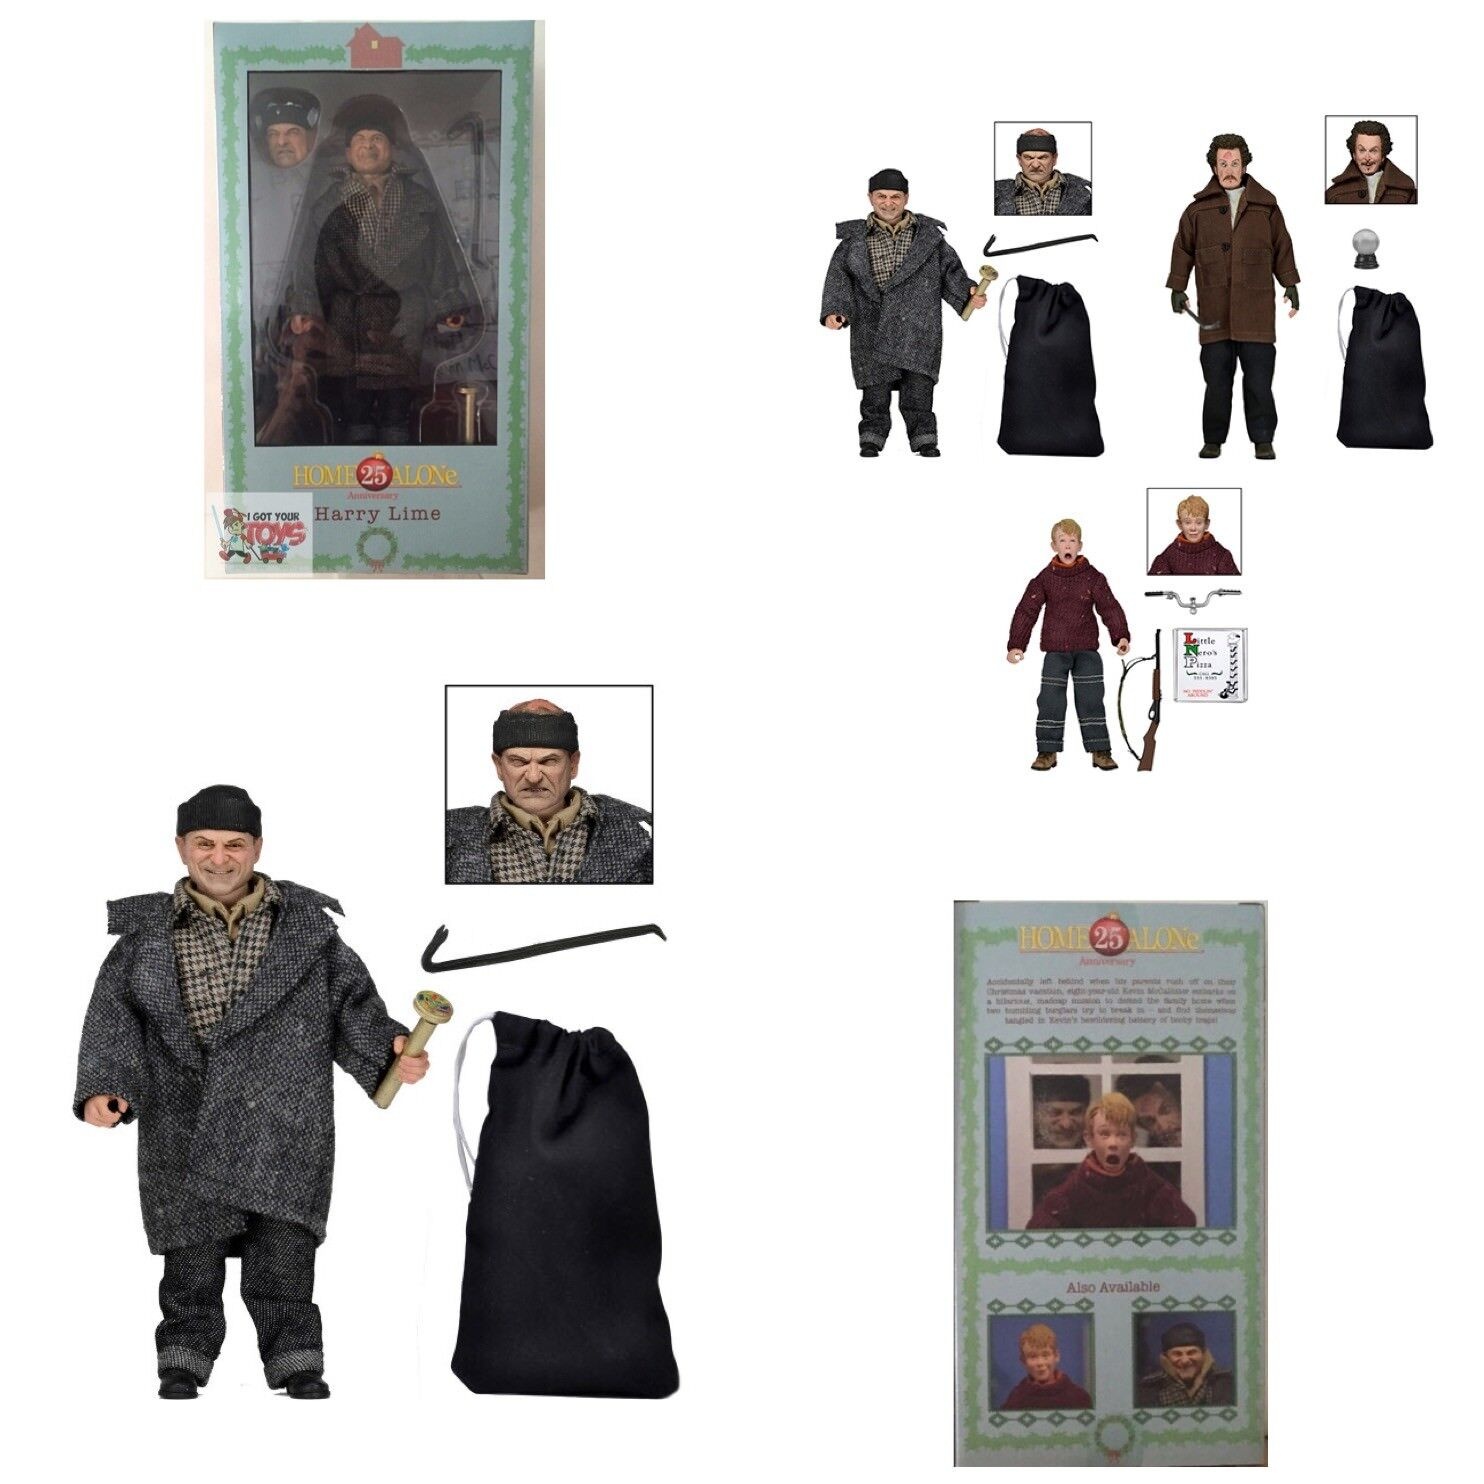 HARRY LIME Home Alone NECA 25TH ANNIVERSARY 5 1 2  Inch 2015 CLOTHED FIGURE